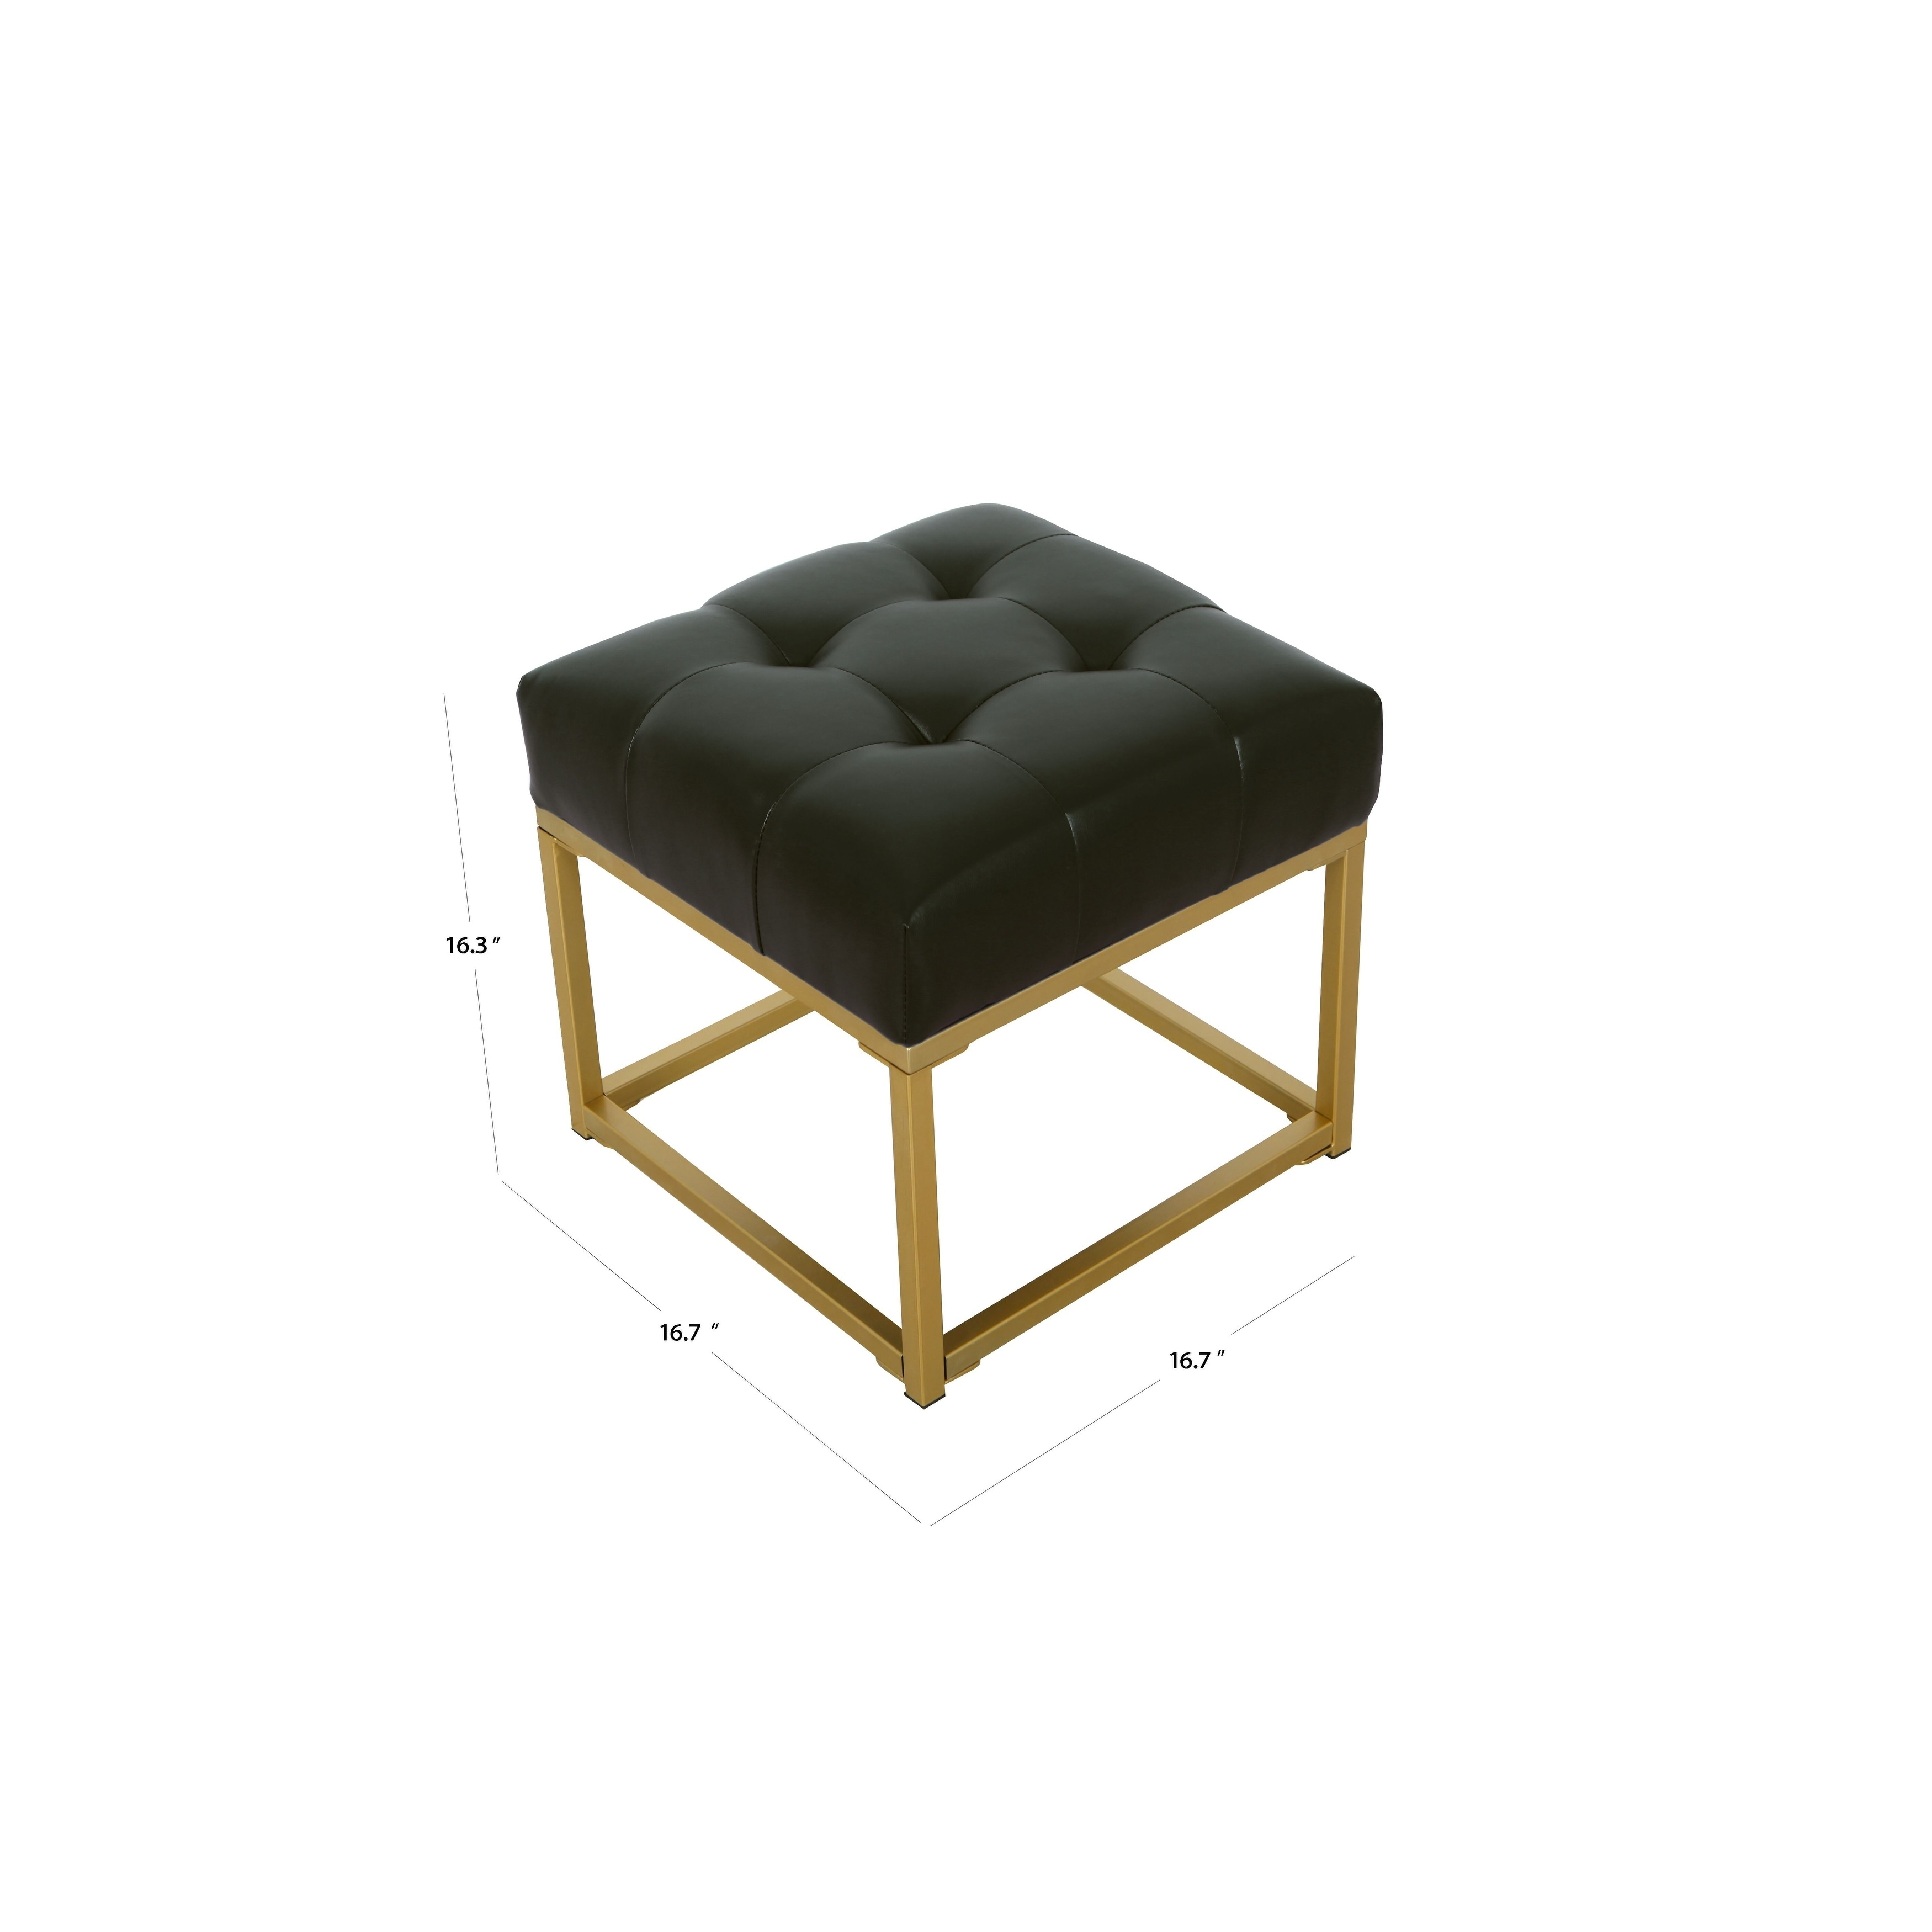 Swell Homepop Tufted Black Faux Leather Ottoman Bralicious Painted Fabric Chair Ideas Braliciousco